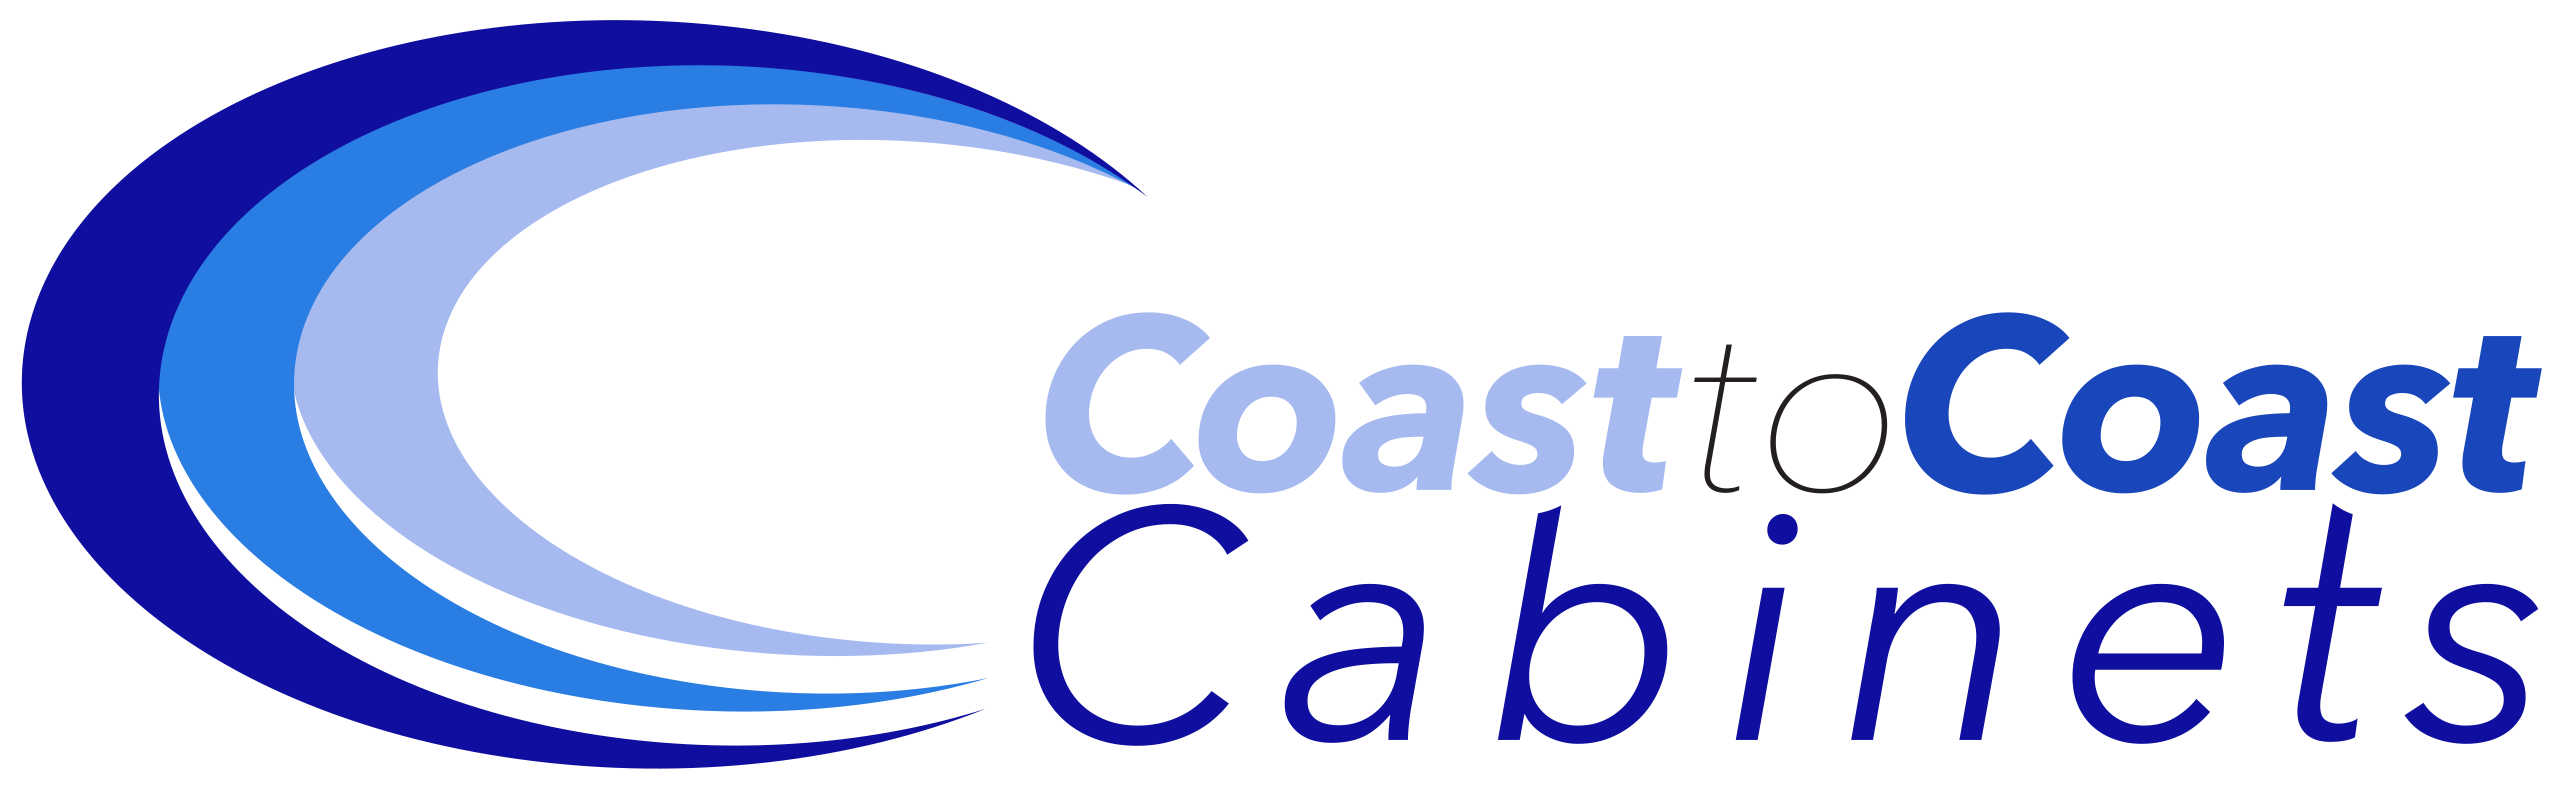 coast to coast cabinets logo kitchen and bathroom cabinets